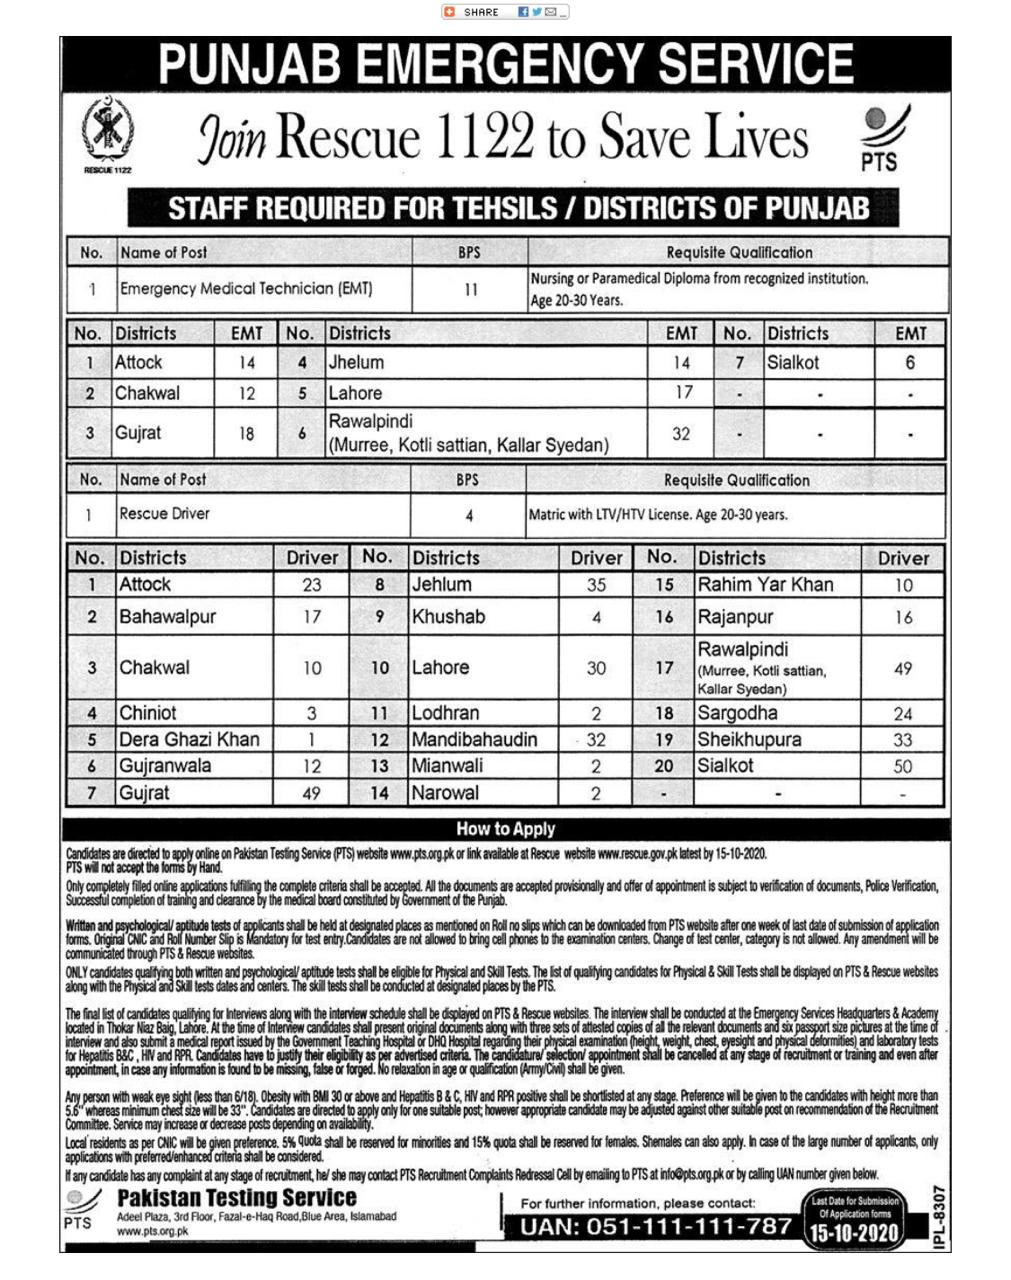 Rescue 1122 Punjab Jobs PTS Roll No Slip Punjab Emergency Services  (411) Phase I Rescue Driver Emergency Medical Technician